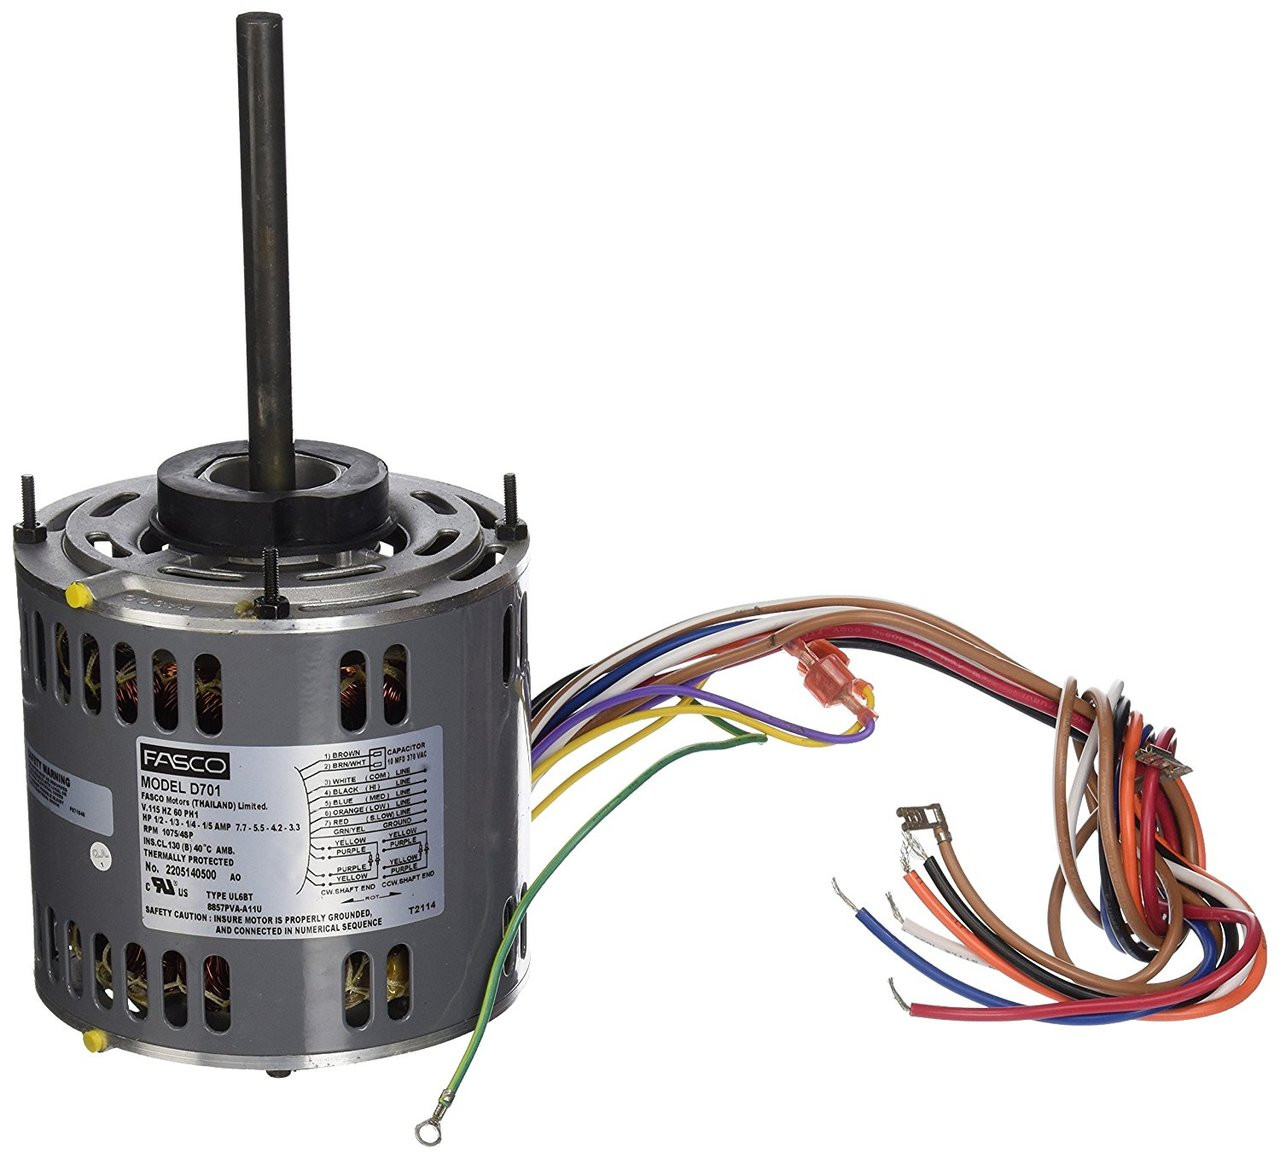 D701__79489.1490982346.1280.1280?c=2 furnace blower electric motors belt drive & direct drive century bd1106 wire diagram at aneh.co